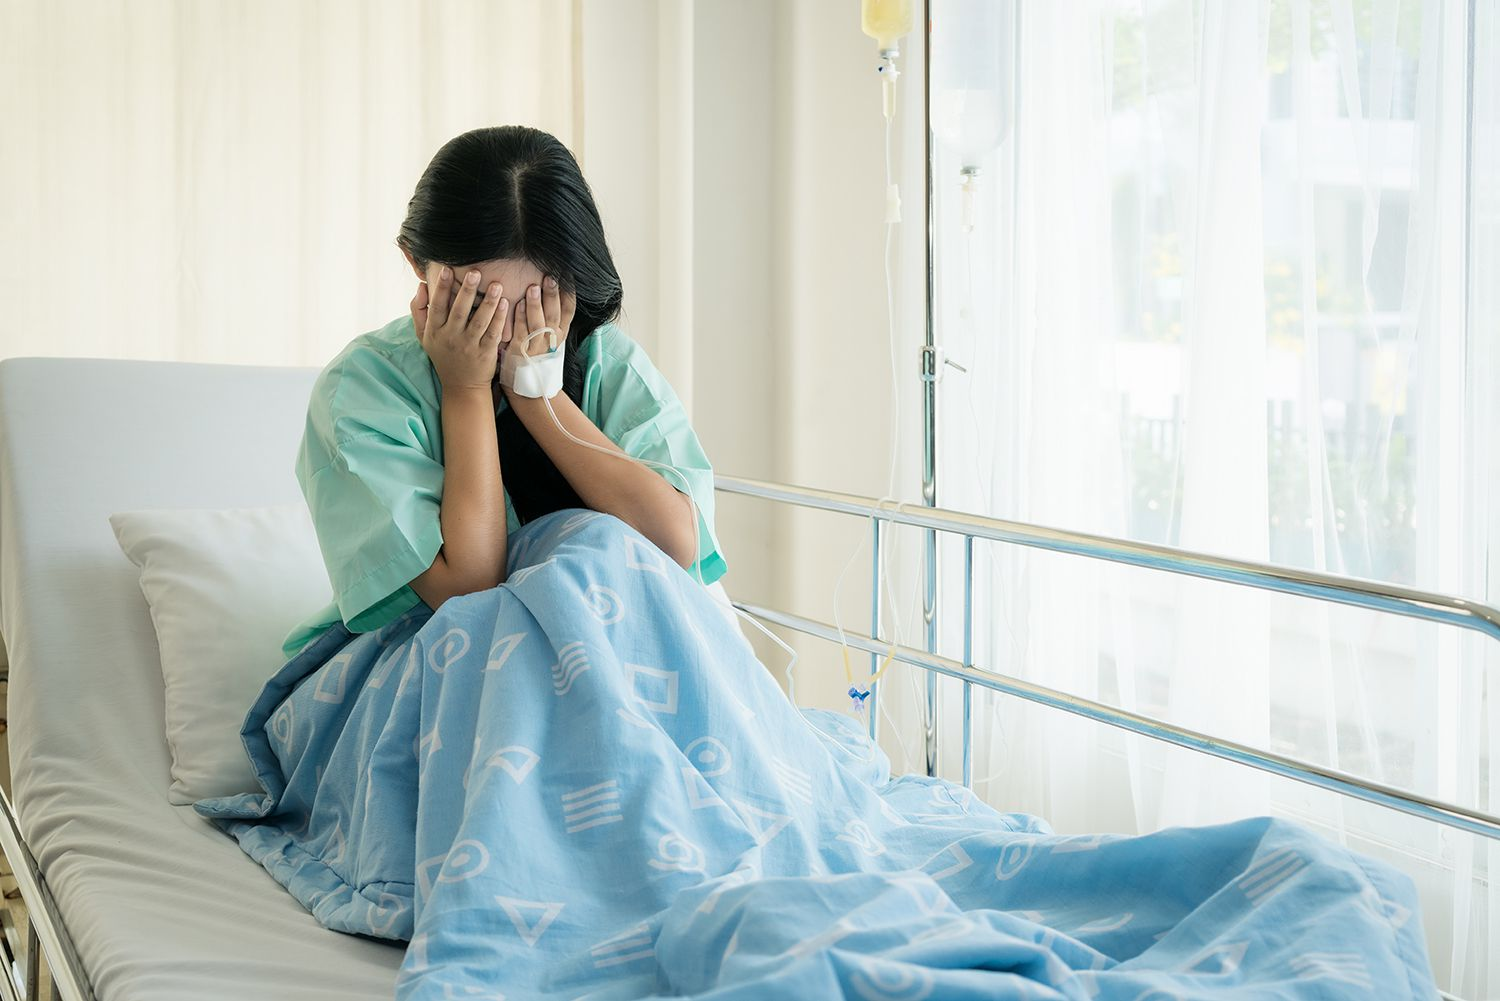 What Are Missed Miscarriage Symptoms?